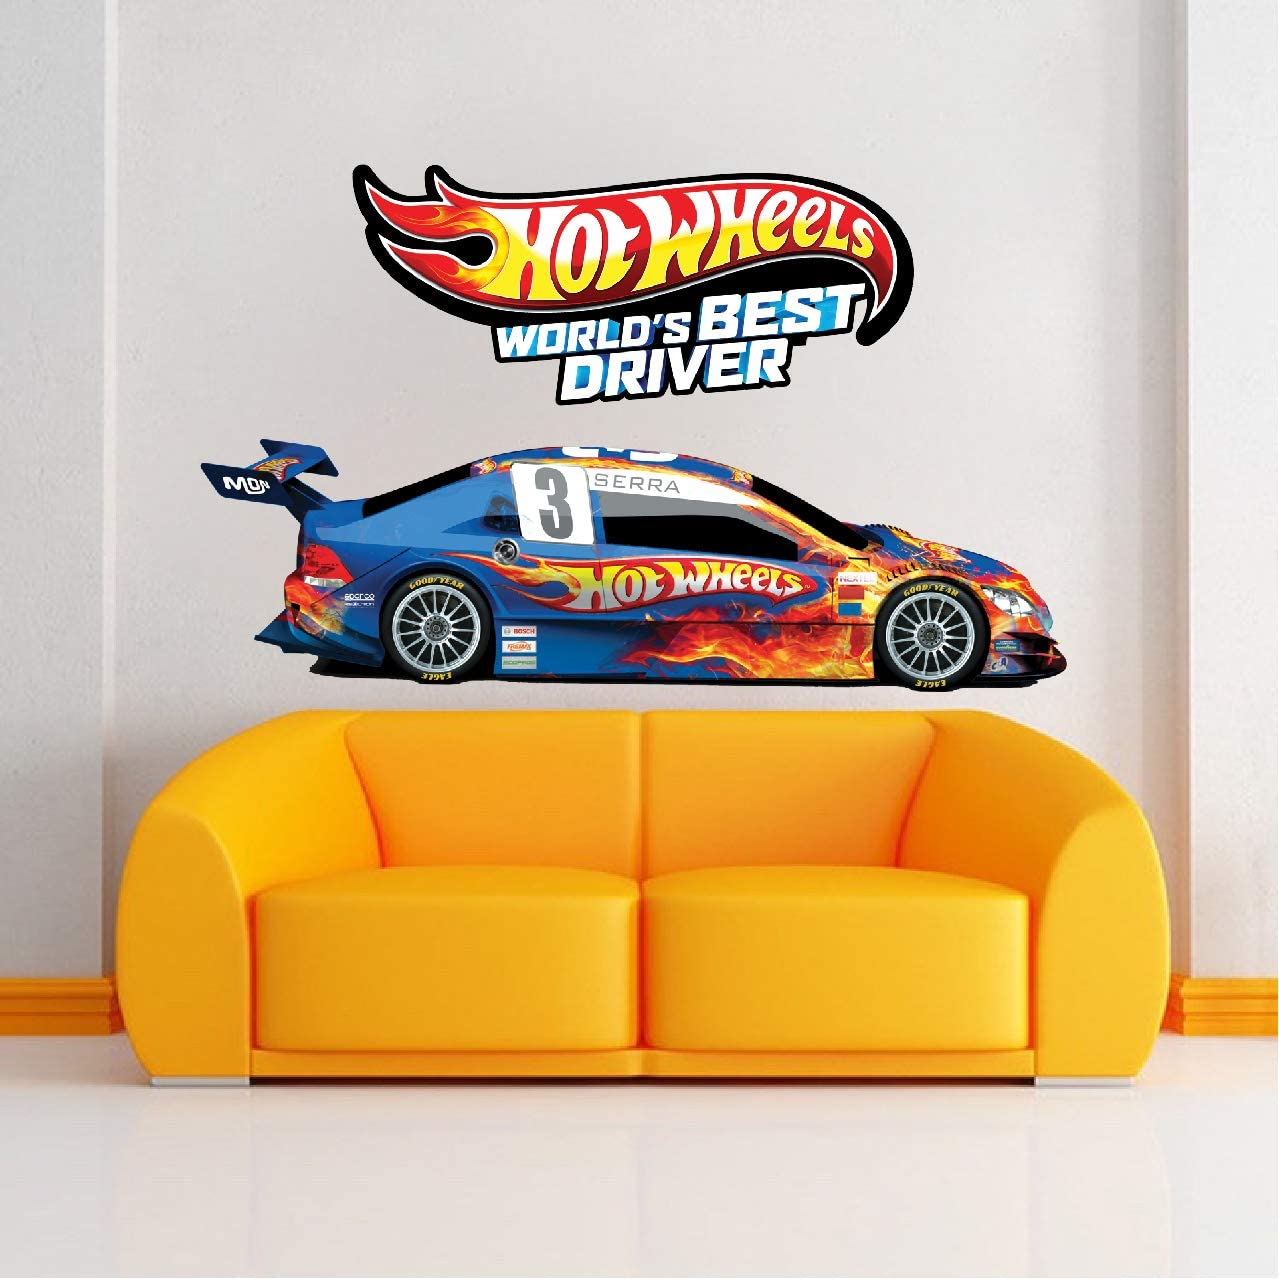 Race Car Boys Wall Decal Kids Racing Decor Art Apartment Bedroom Hotwheels s36 Prime Decals Race Car Wall Stickers for The Nursery